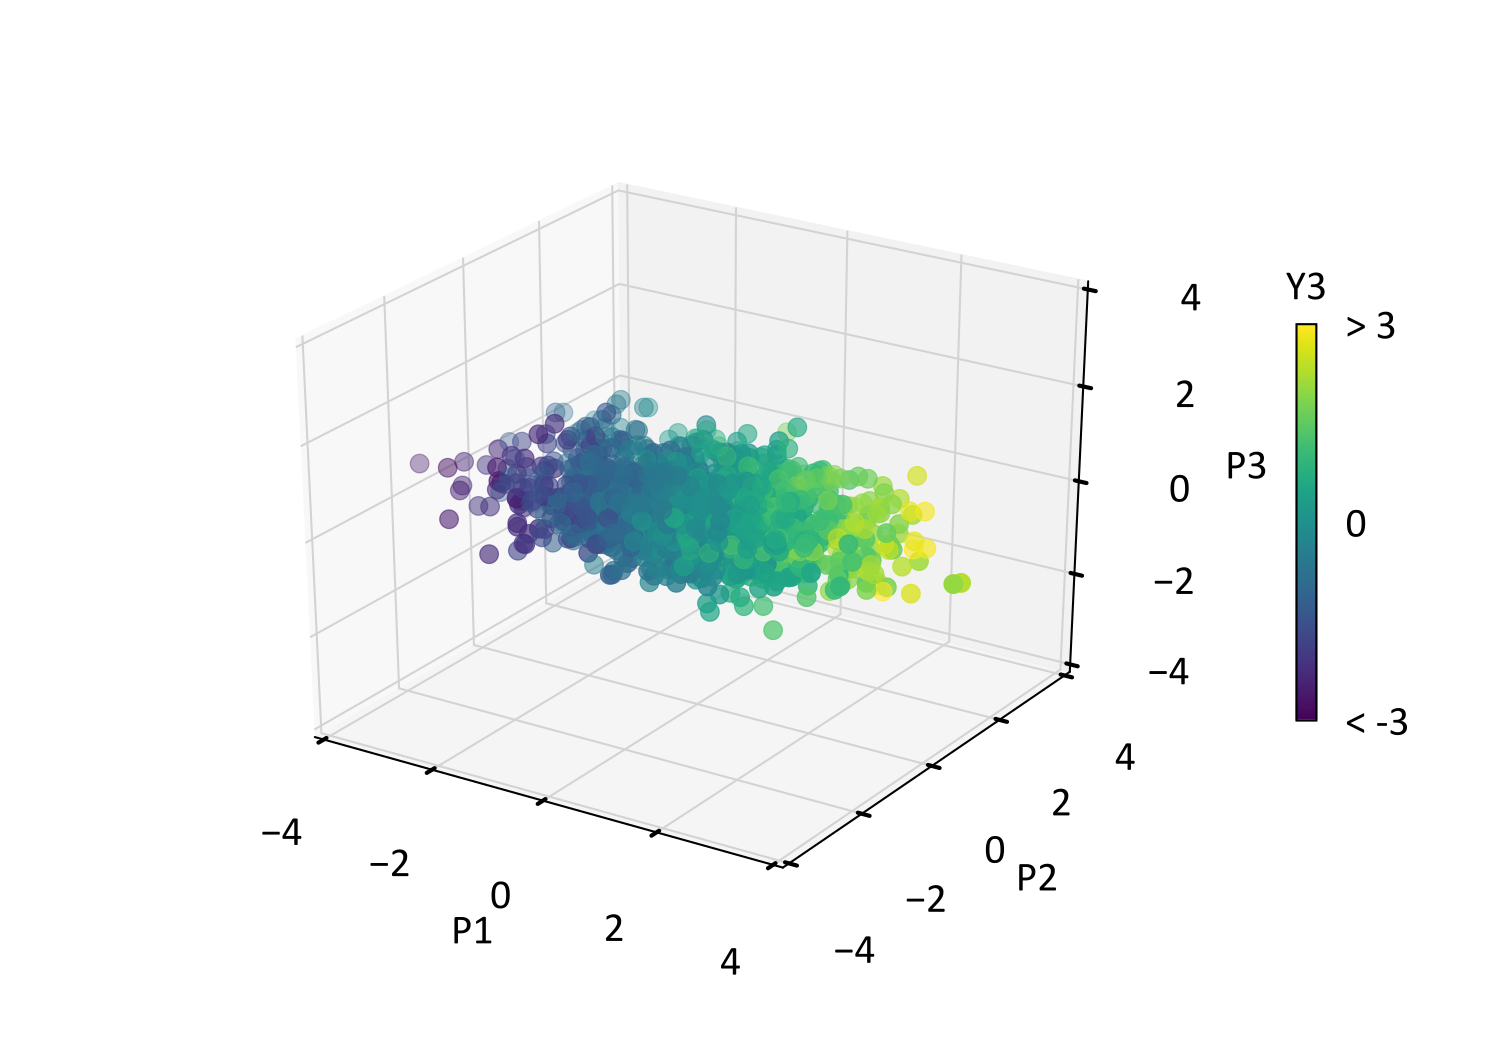 Scatter plot of the PCA data.